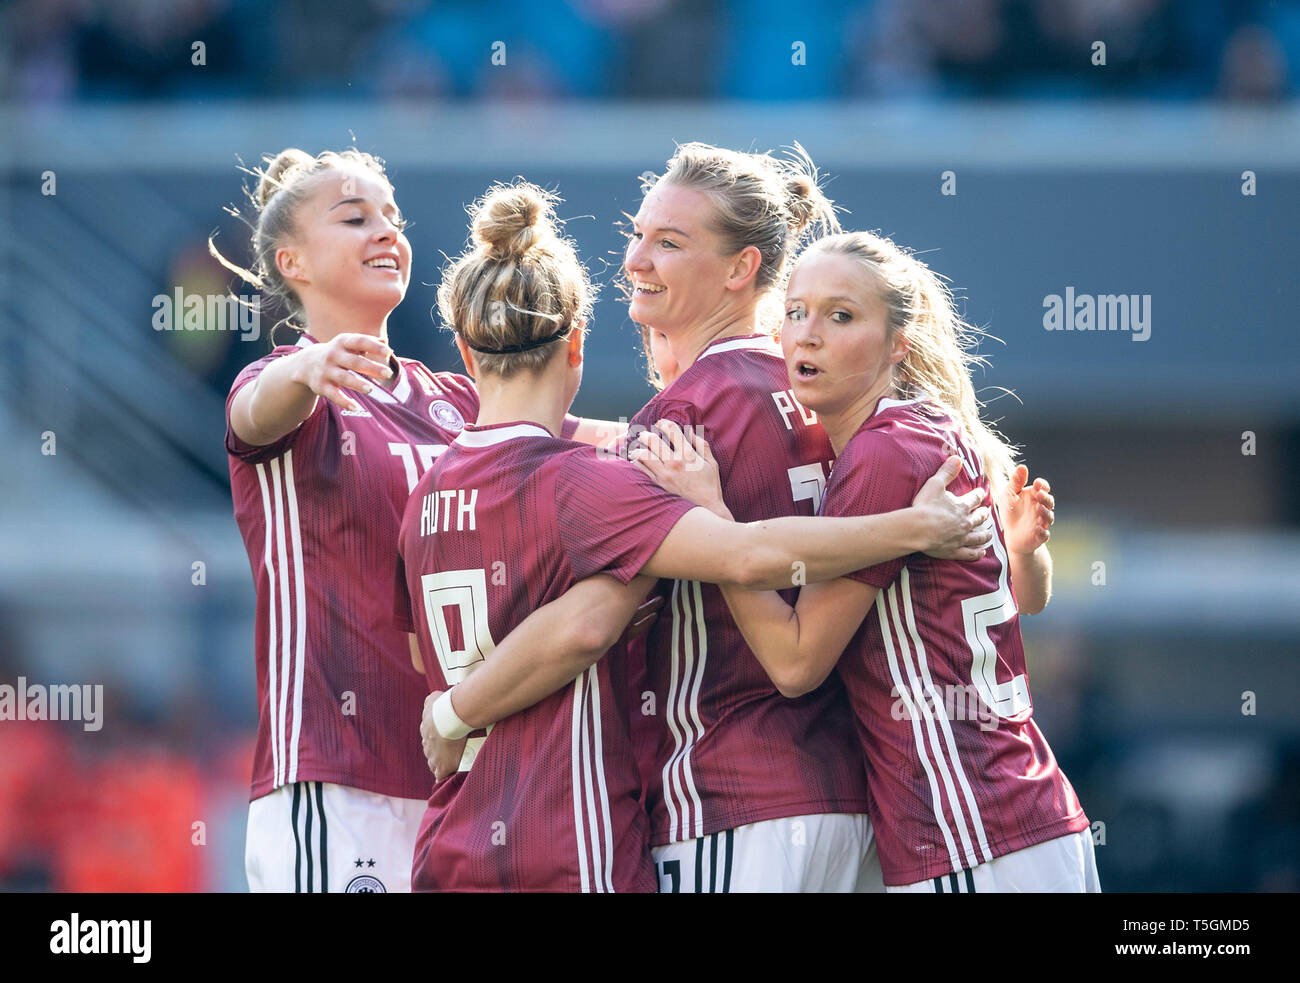 Paderborn, Deutschland. 09th Apr, 2019. jubilation GER for goalkeeper Alexandra POPP (GER/withte) after goal to 1: 1, left to right Giulia GWINN (GER), Svenja HUTH (GER), Alexandra POPP (GER), Turid KNAAK (GER) National Team Women Friendly Match, Germany (GER) - Japan (JPN) 2: 2, on 09/04/2019 in Paderborn/Germany. | Usage worldwide Credit: dpa/Alamy Live News - Stock Image